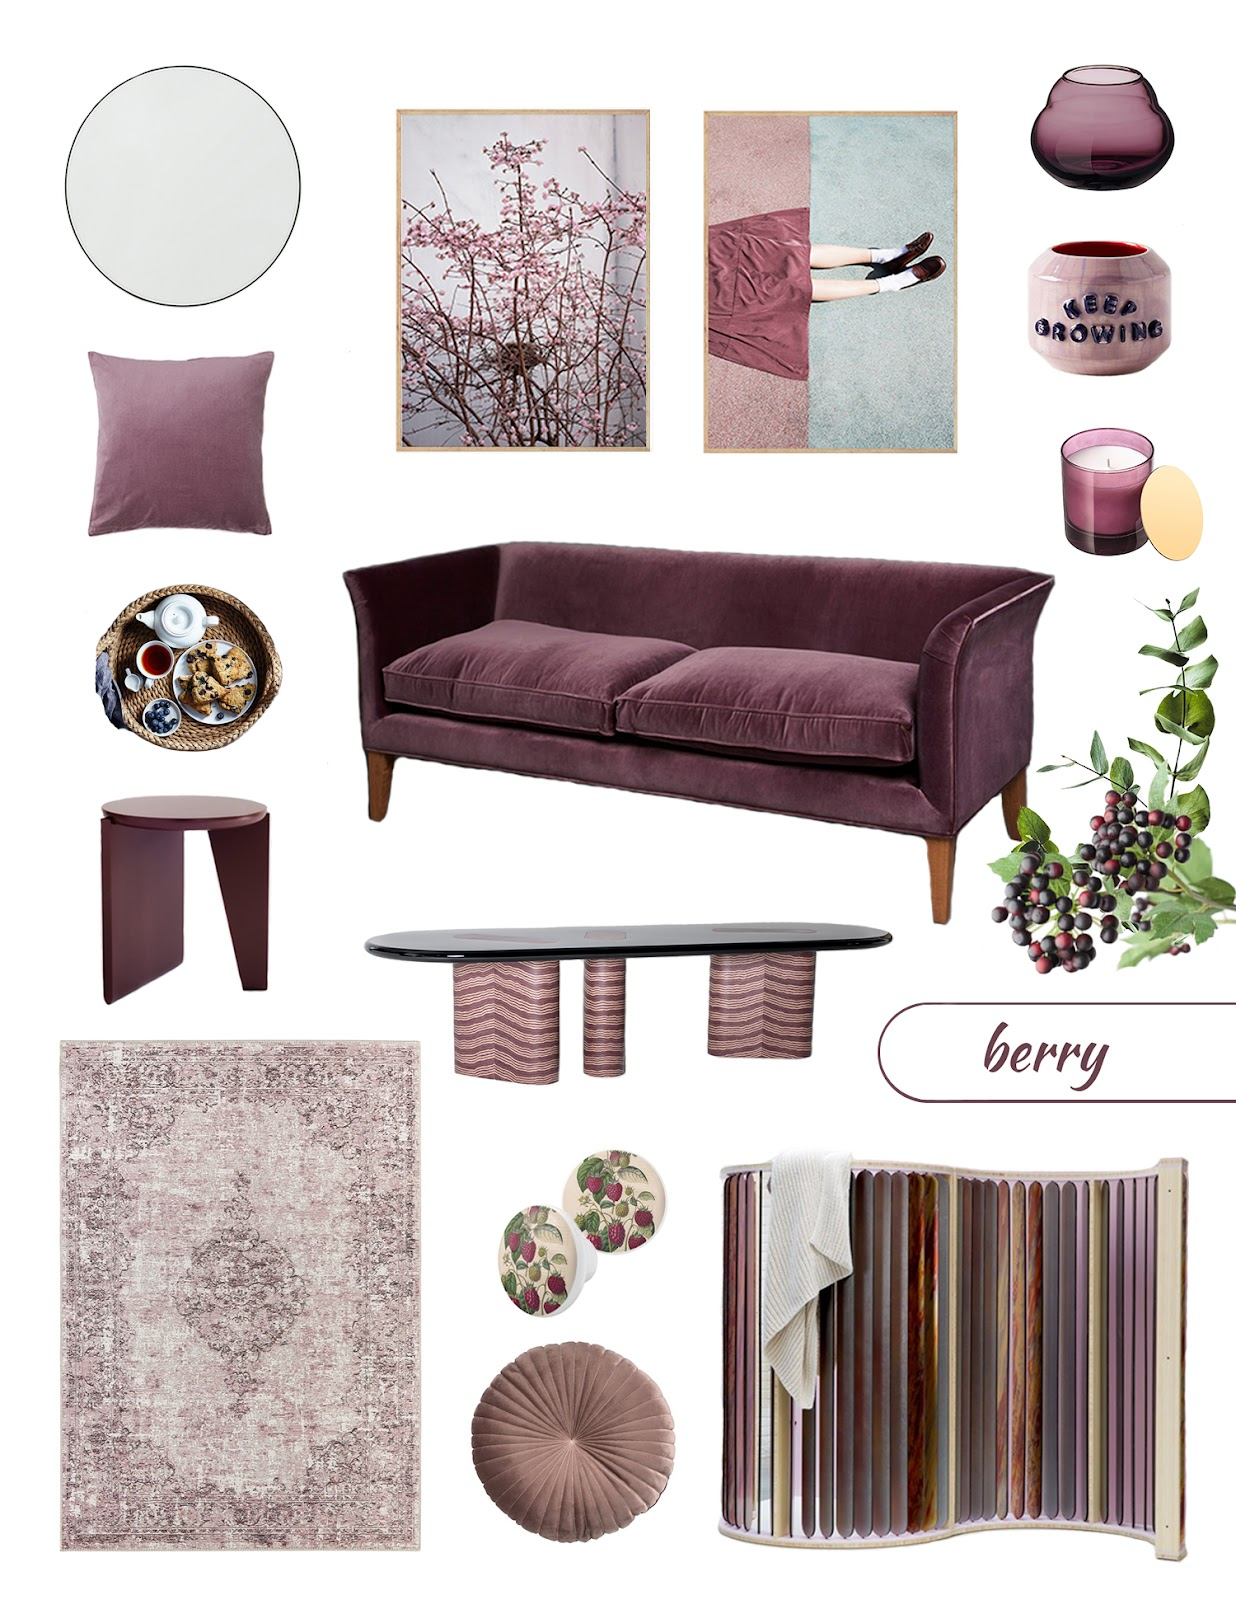 Color trends 2021: Dark purple